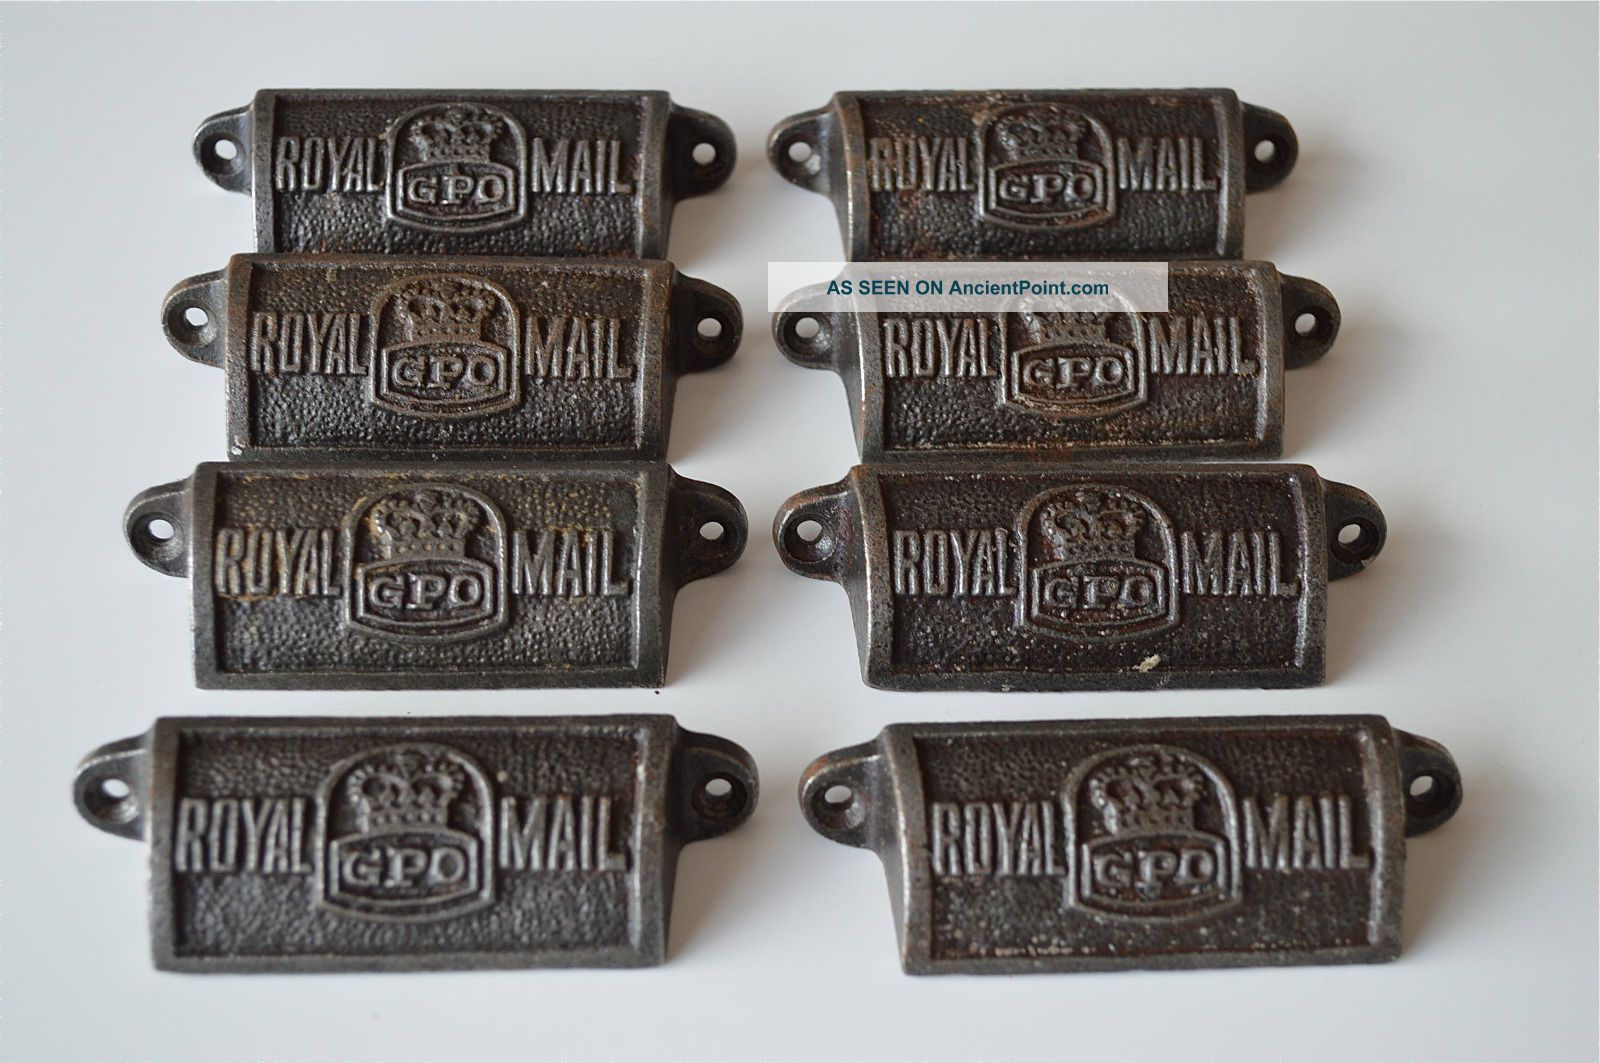 8 Vintage Cast Iron Royal Mail Gpo Drawer Pull Handles Chest Post Office Gpo Other Antique Hardware photo